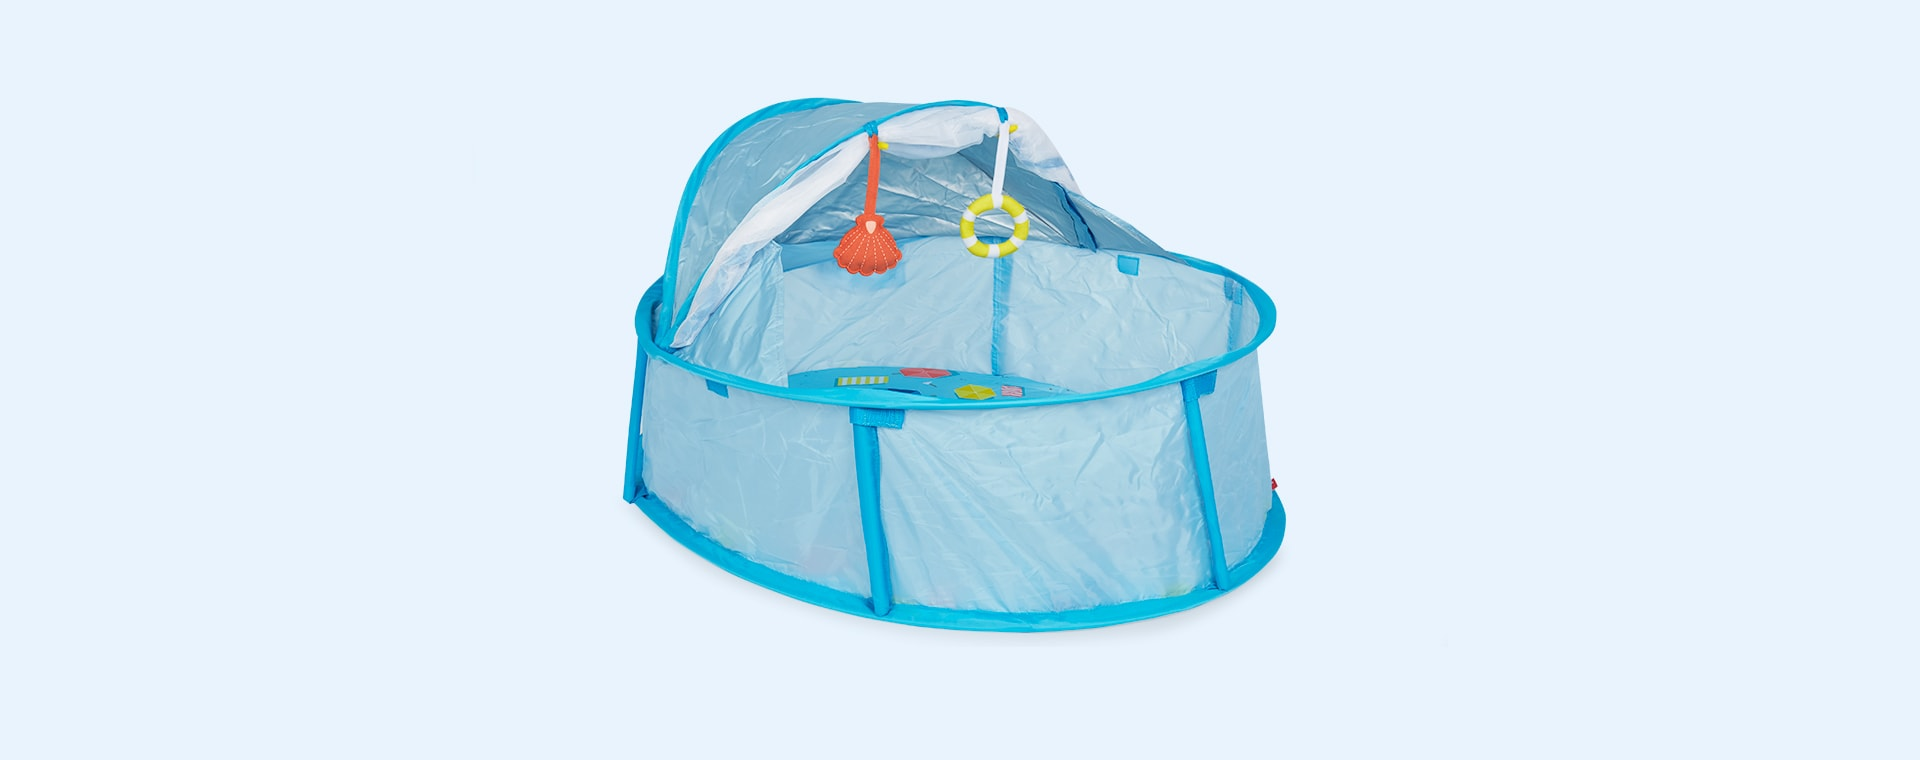 Multi Babymoov Babyni Anti-UV Tent